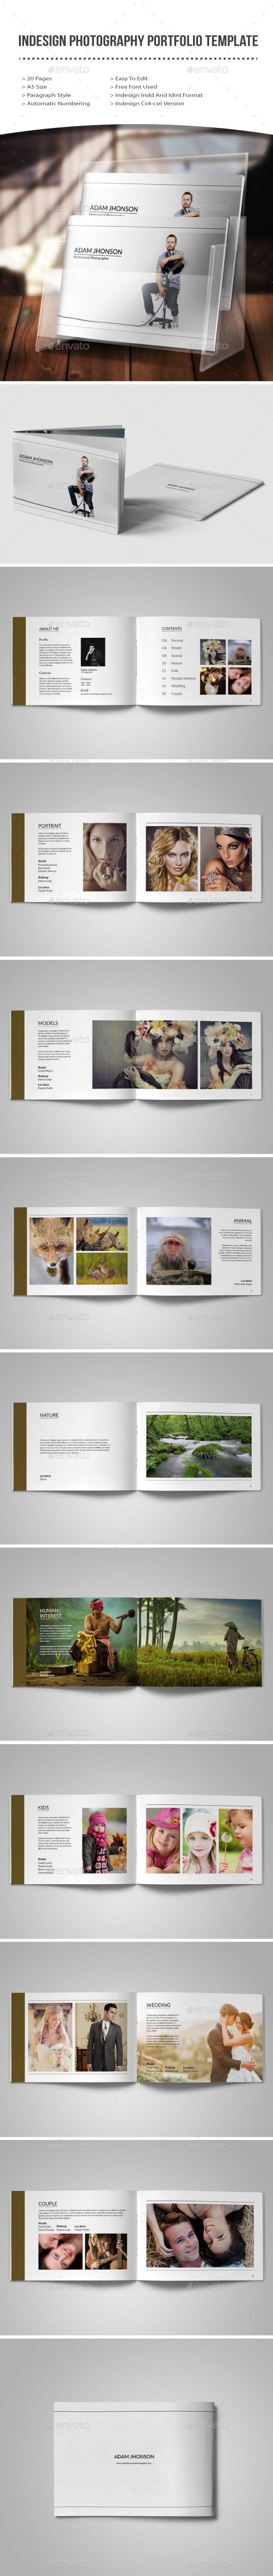 Indesign photography portfolio template - Photo Albums Print Templates